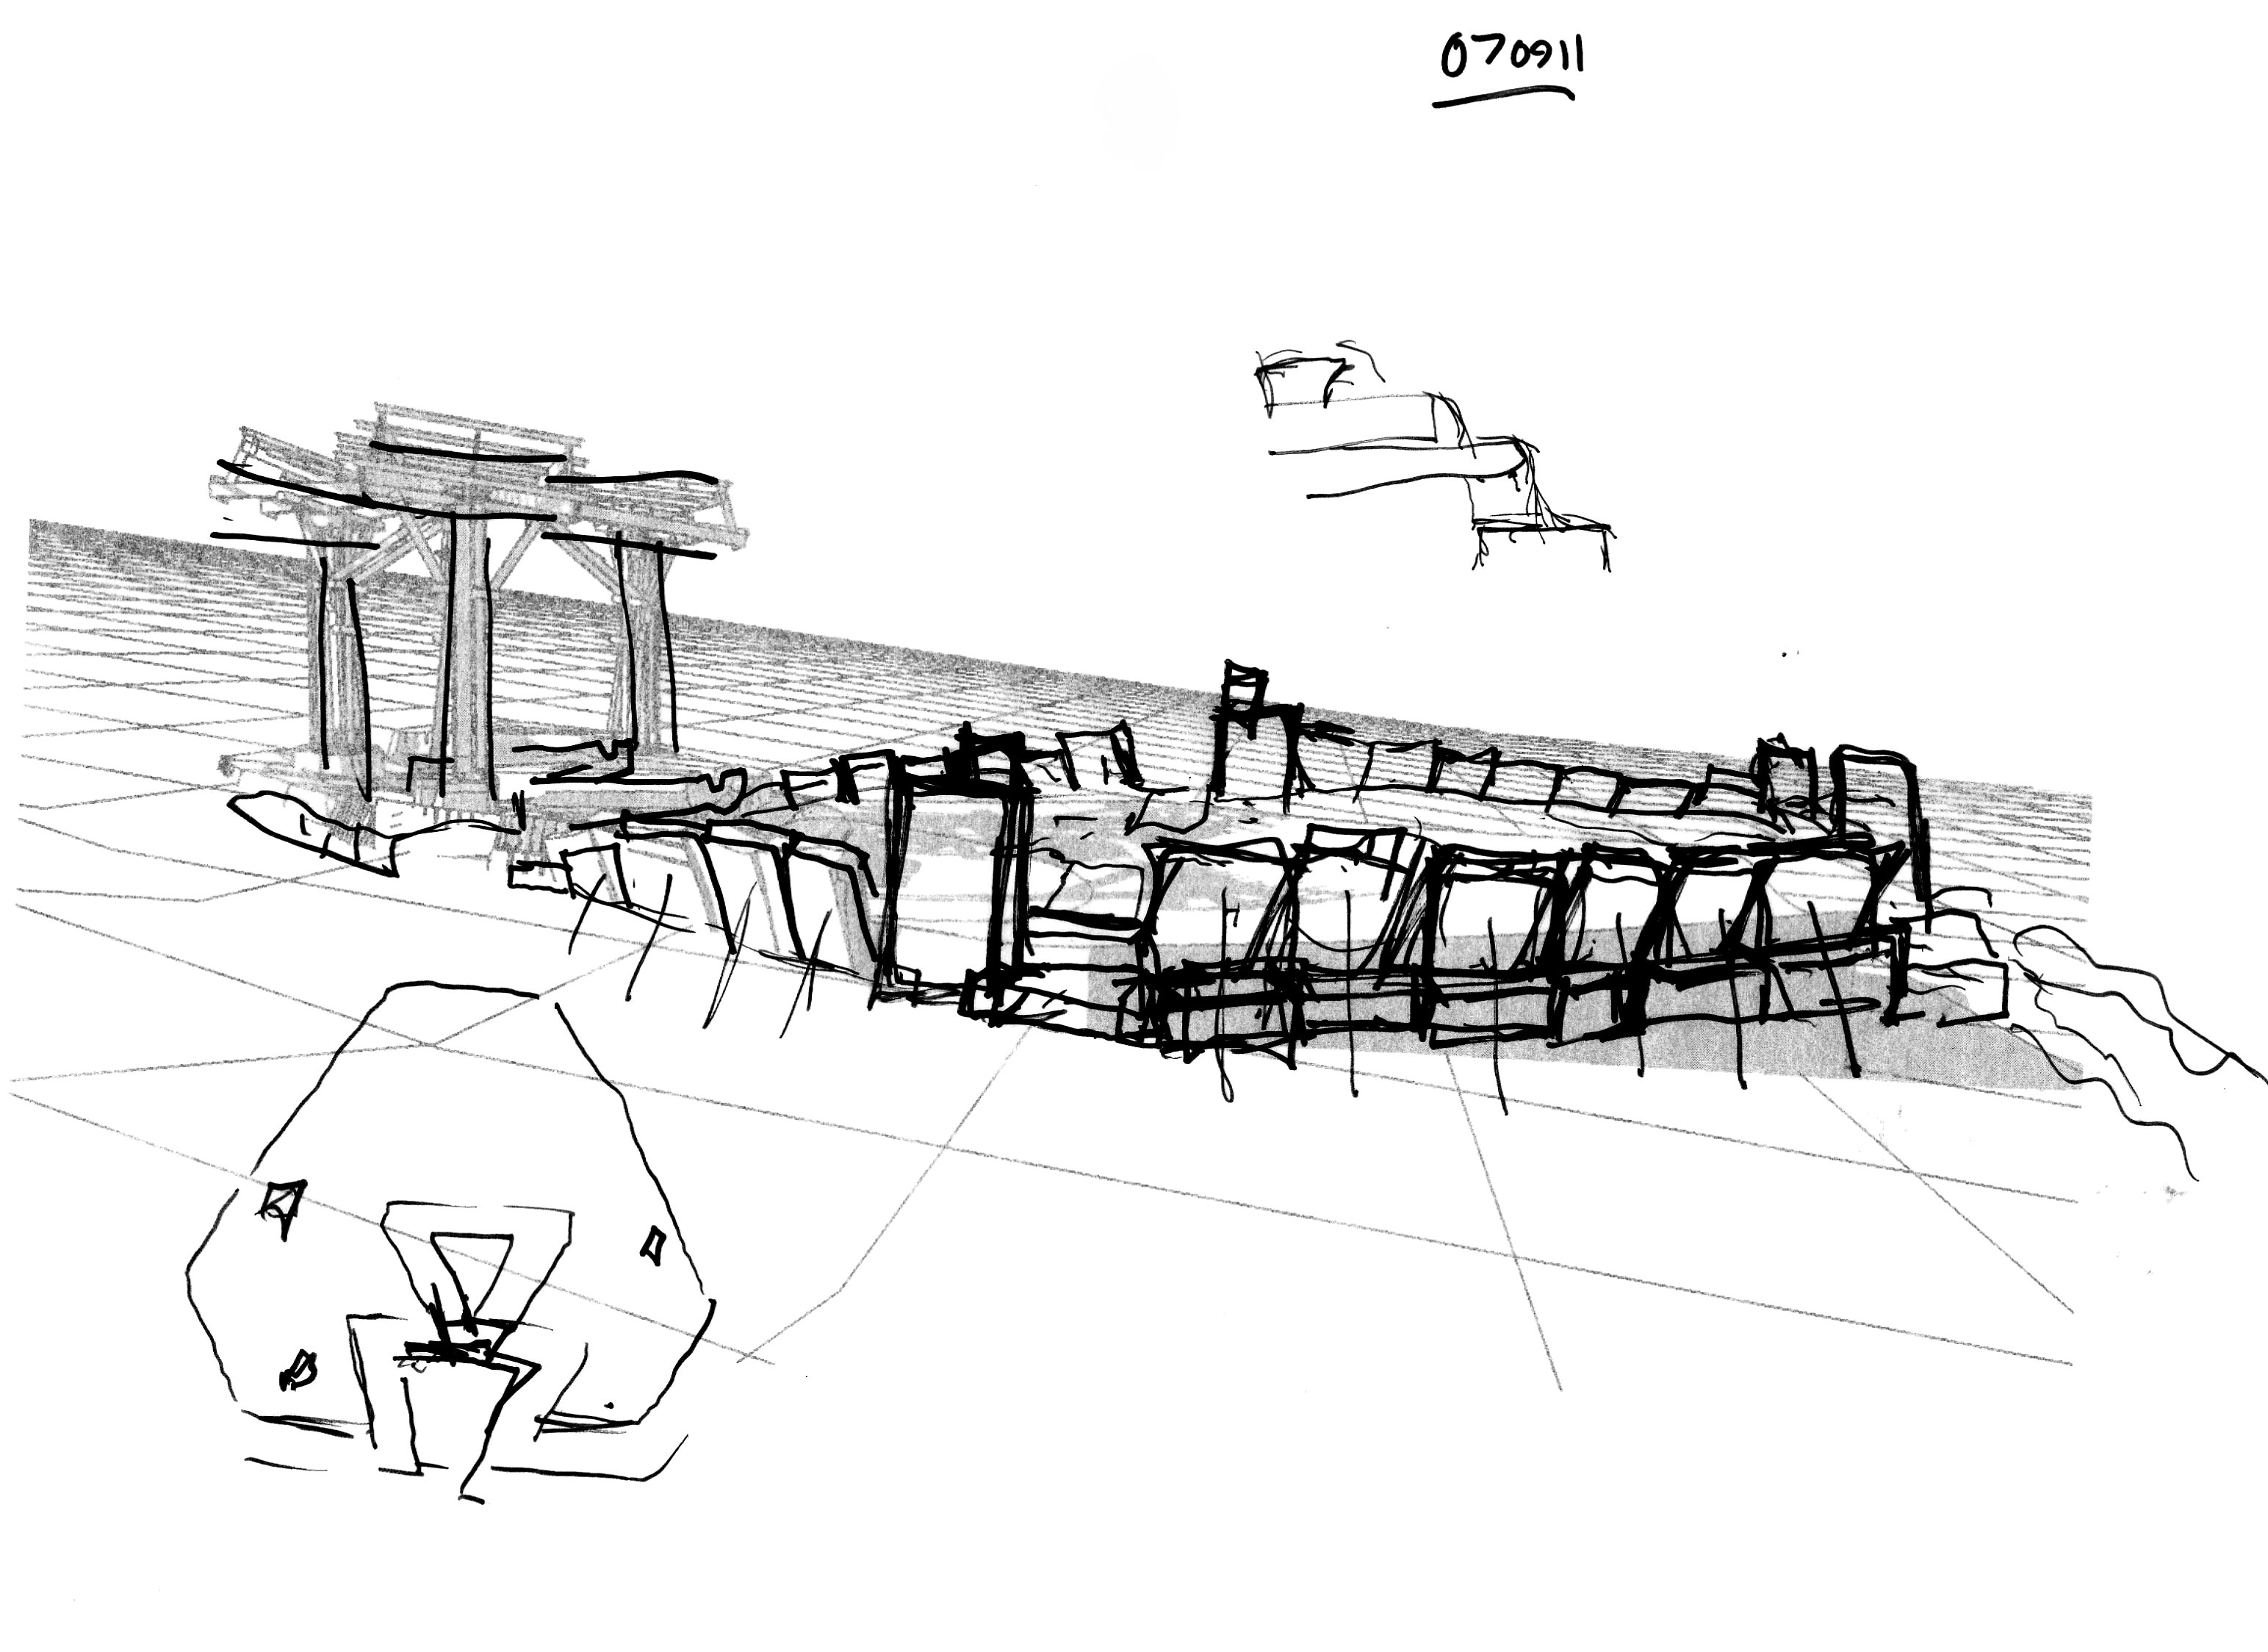 Future Monument (2009) rhombus pool sketch perspective